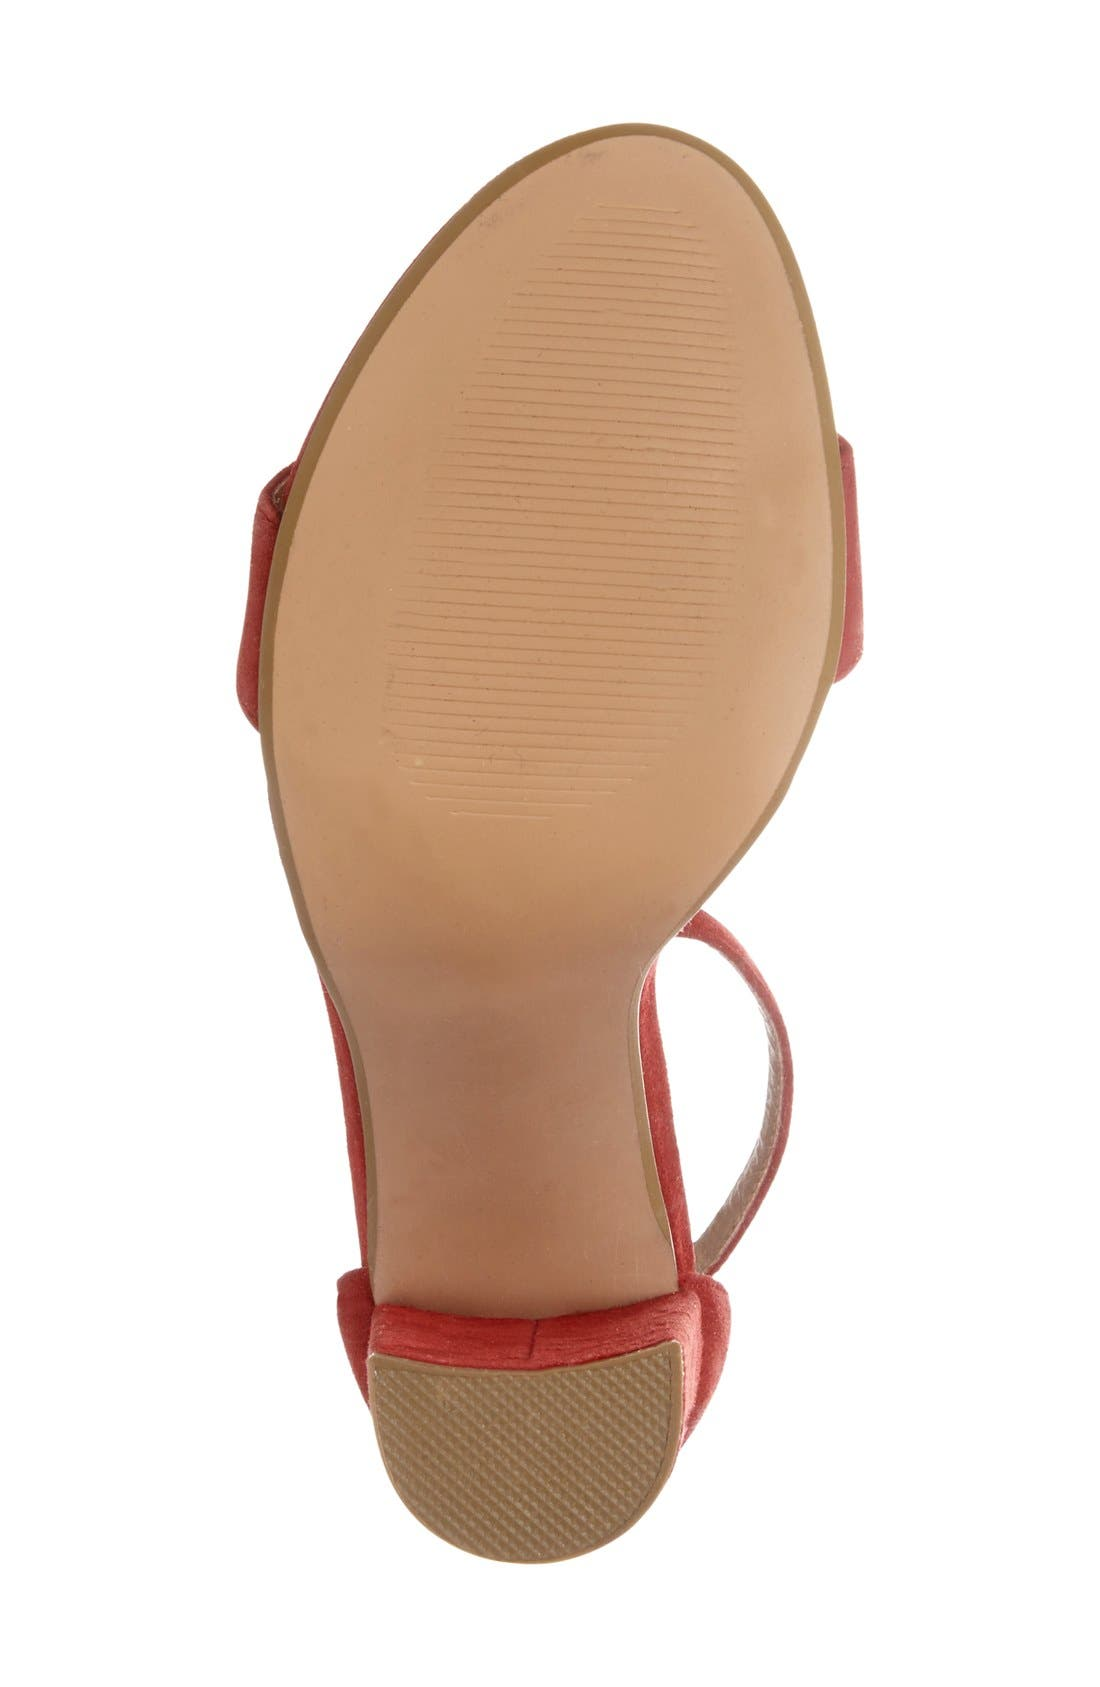 Carrson Sandal,                             Alternate thumbnail 225, color,